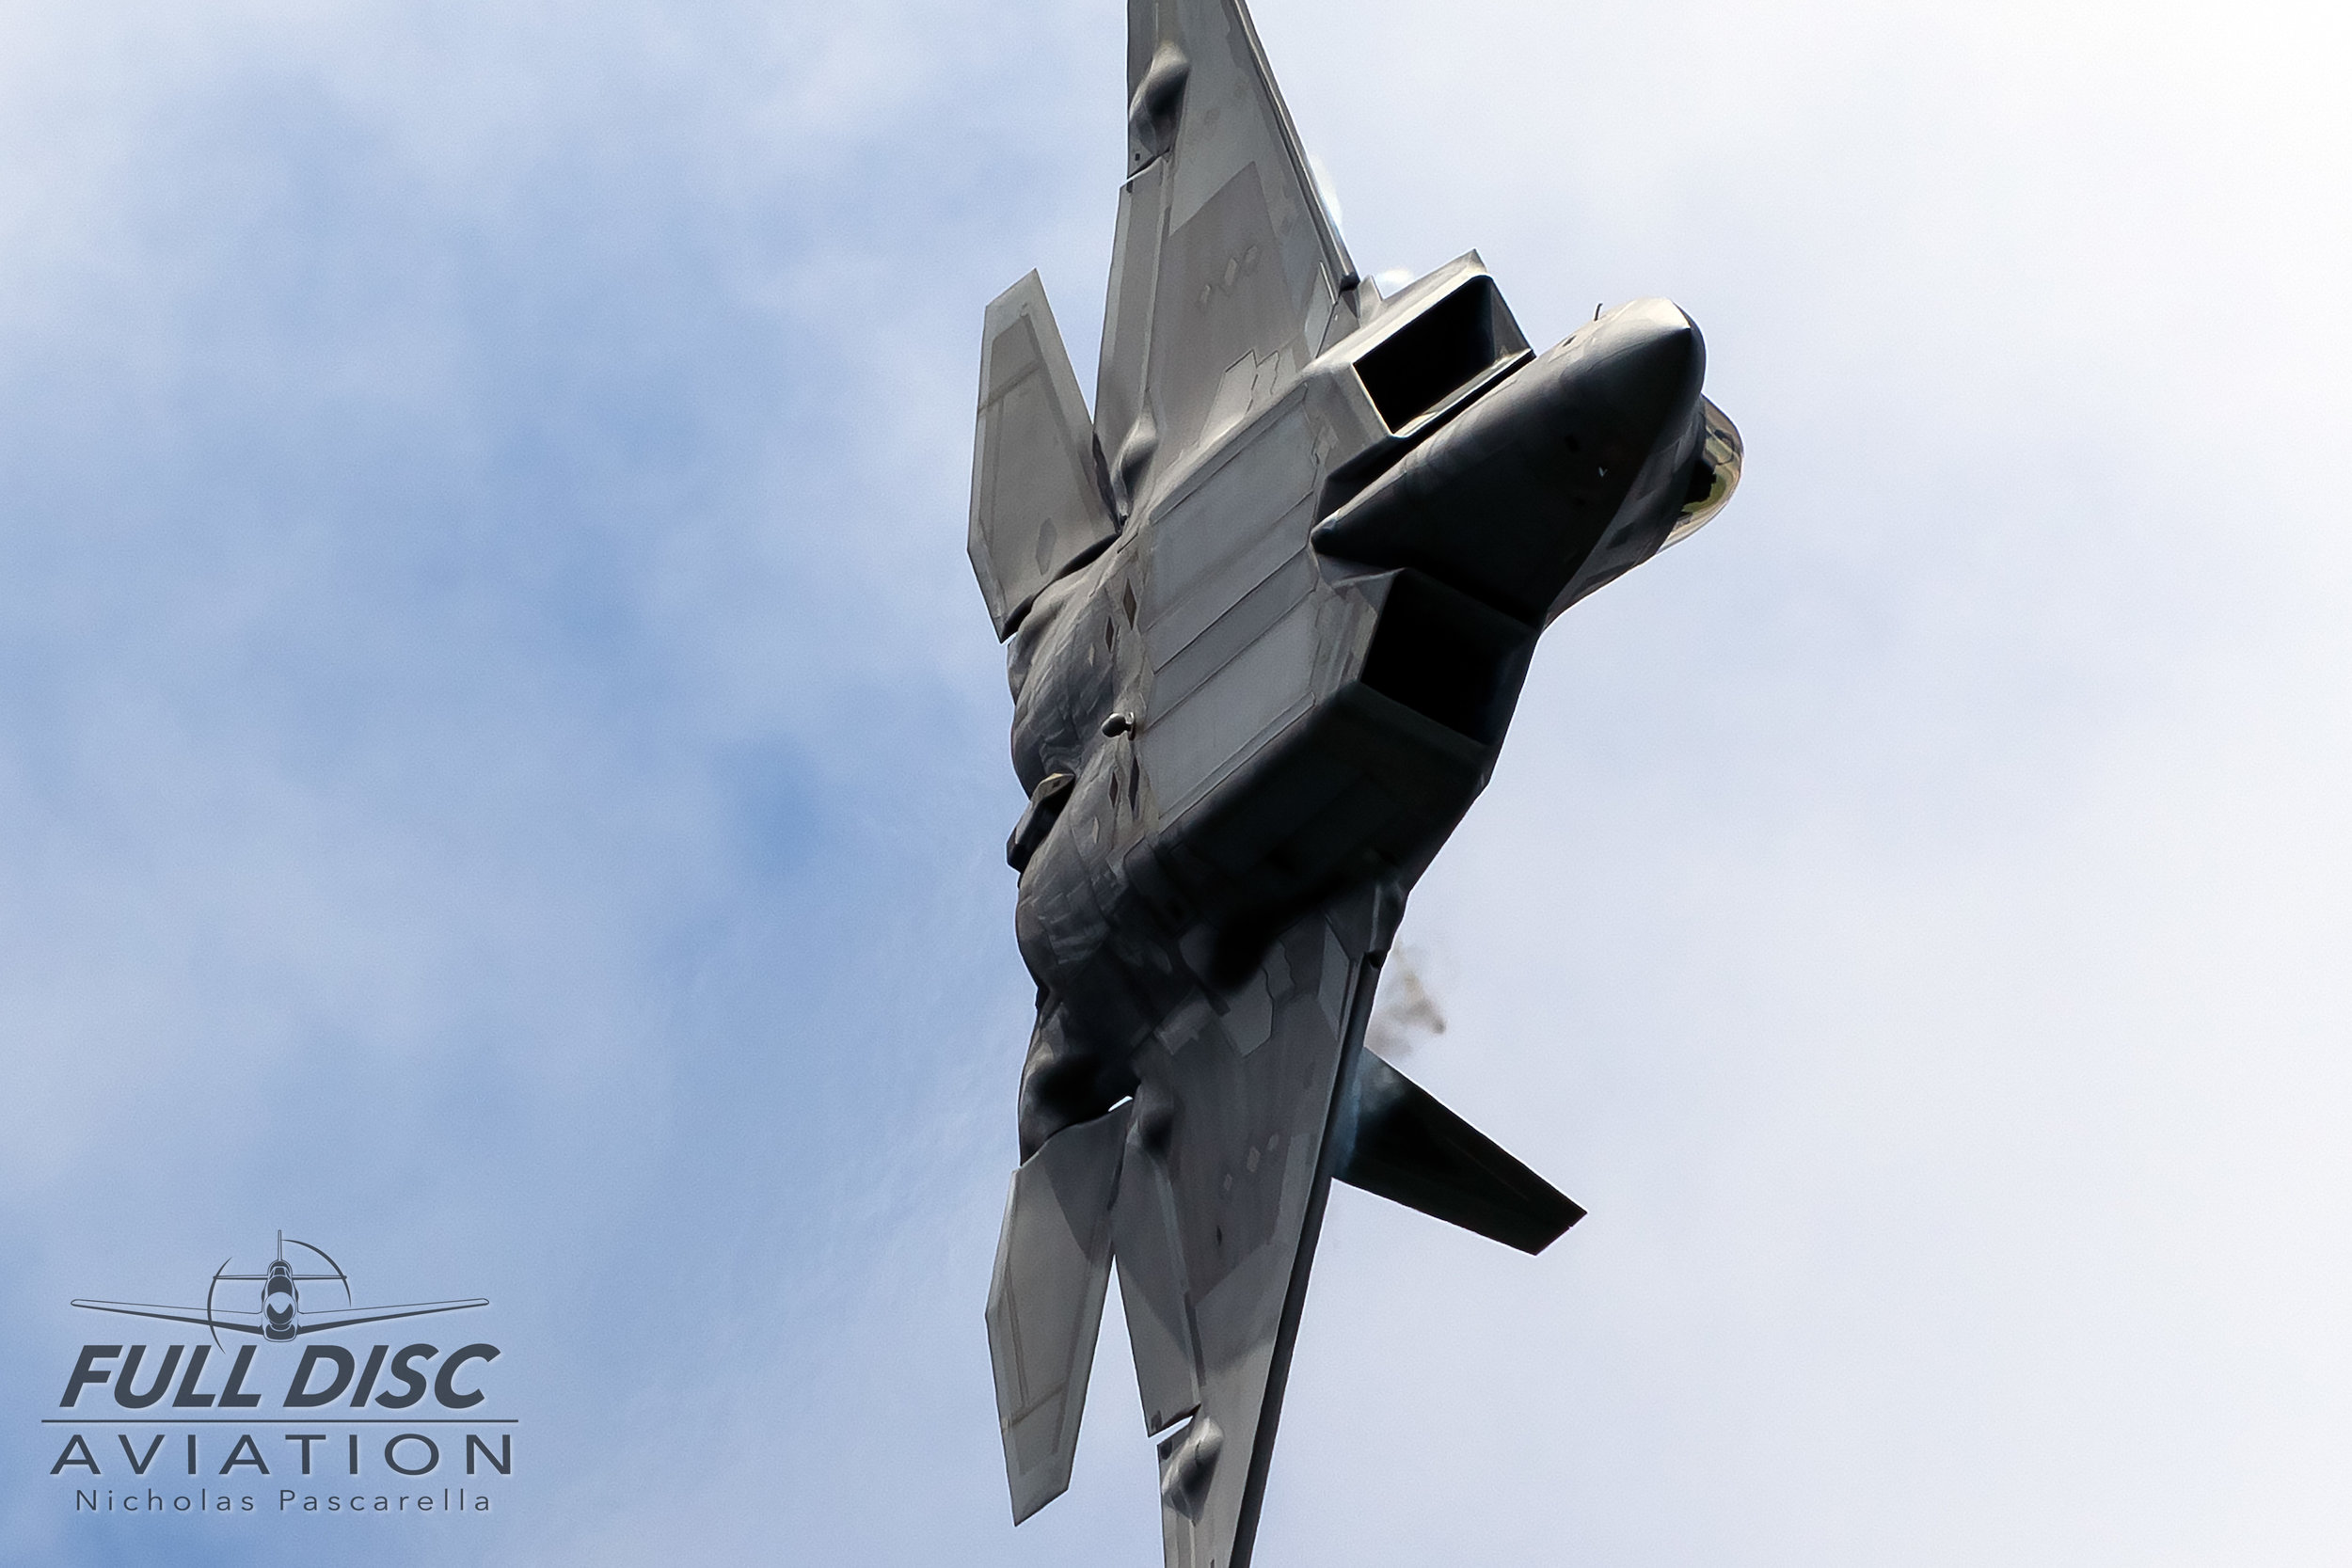 f22_f22raptor_fulldiscaviation_nickpascarella_hardturn.jpg